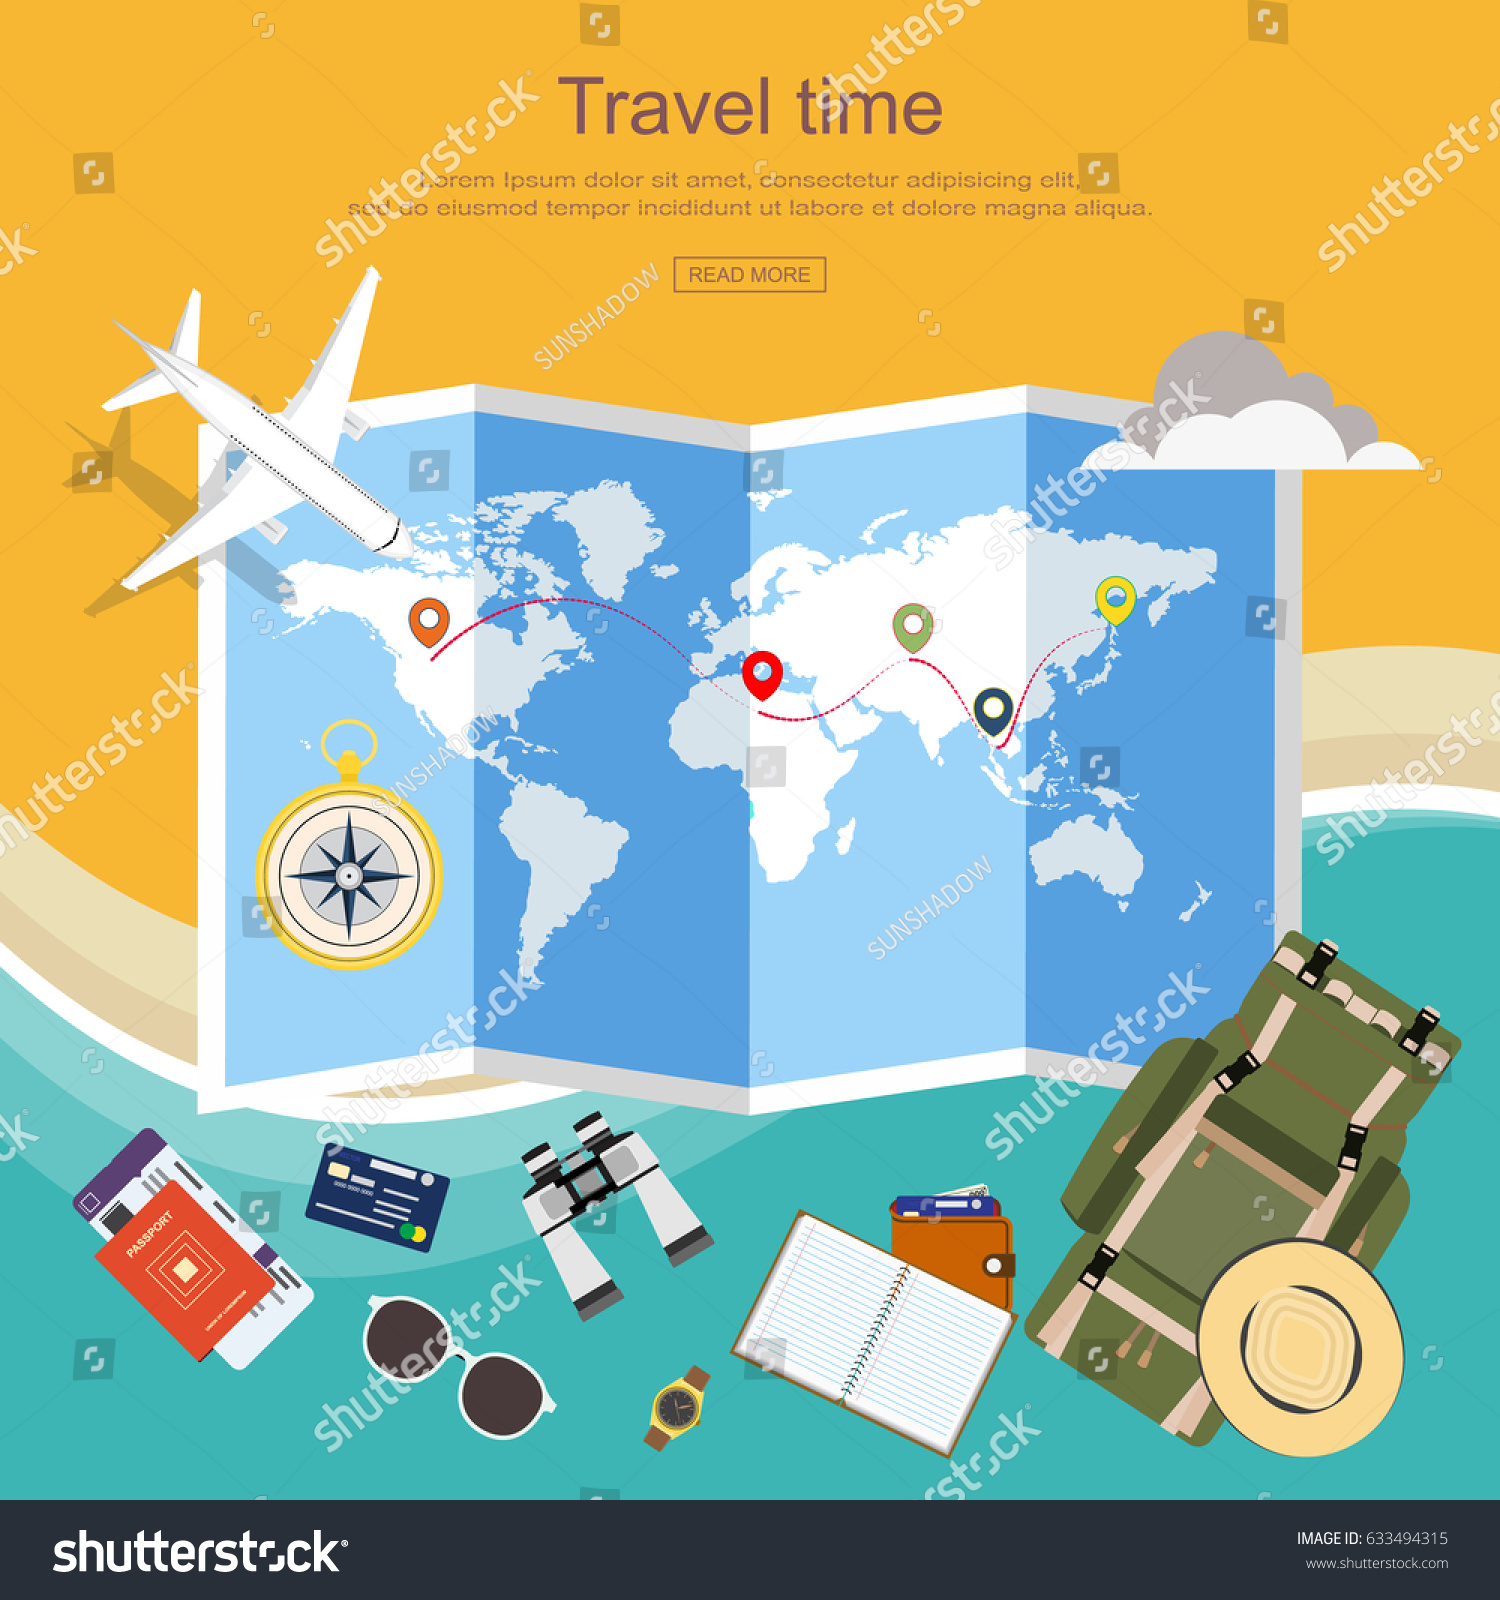 Flat design travel planner travel around vectores en stock 633494315 flat design travel planner travel around the world with luggage passport flight ticket gumiabroncs Images